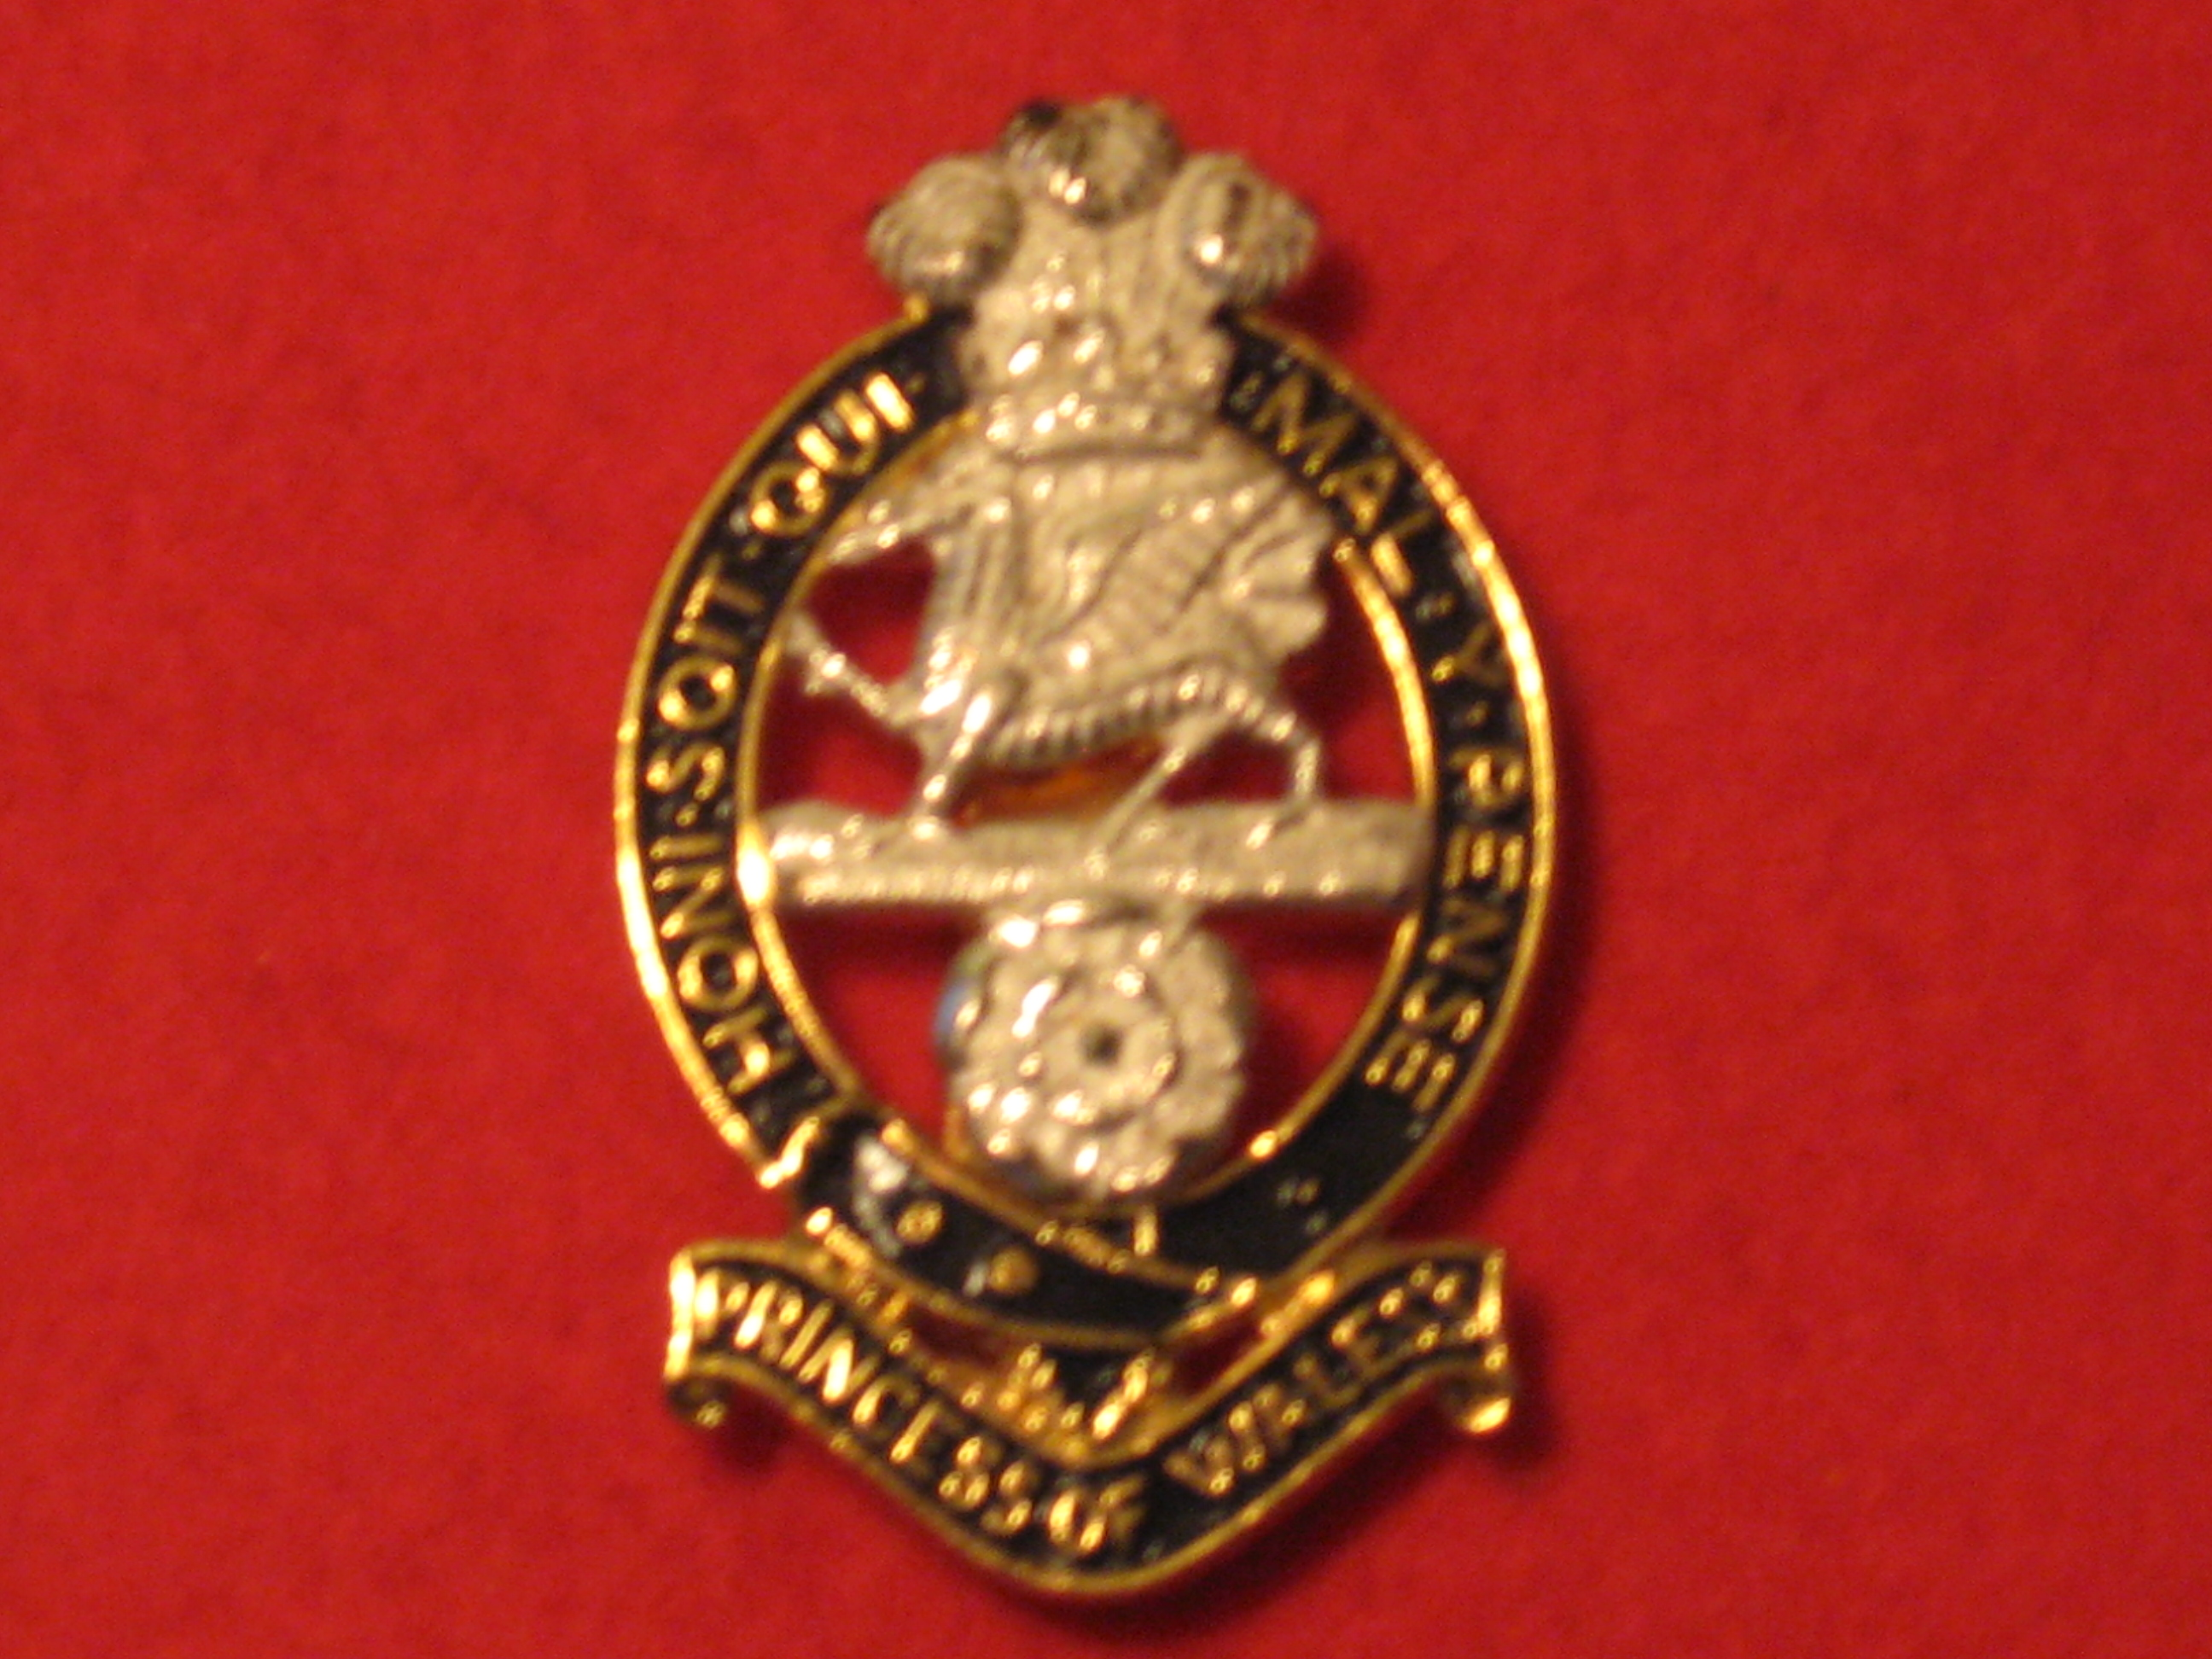 PWRR Blazer Badge Regiment Army Wire Embroidered Military Princess Of Wales